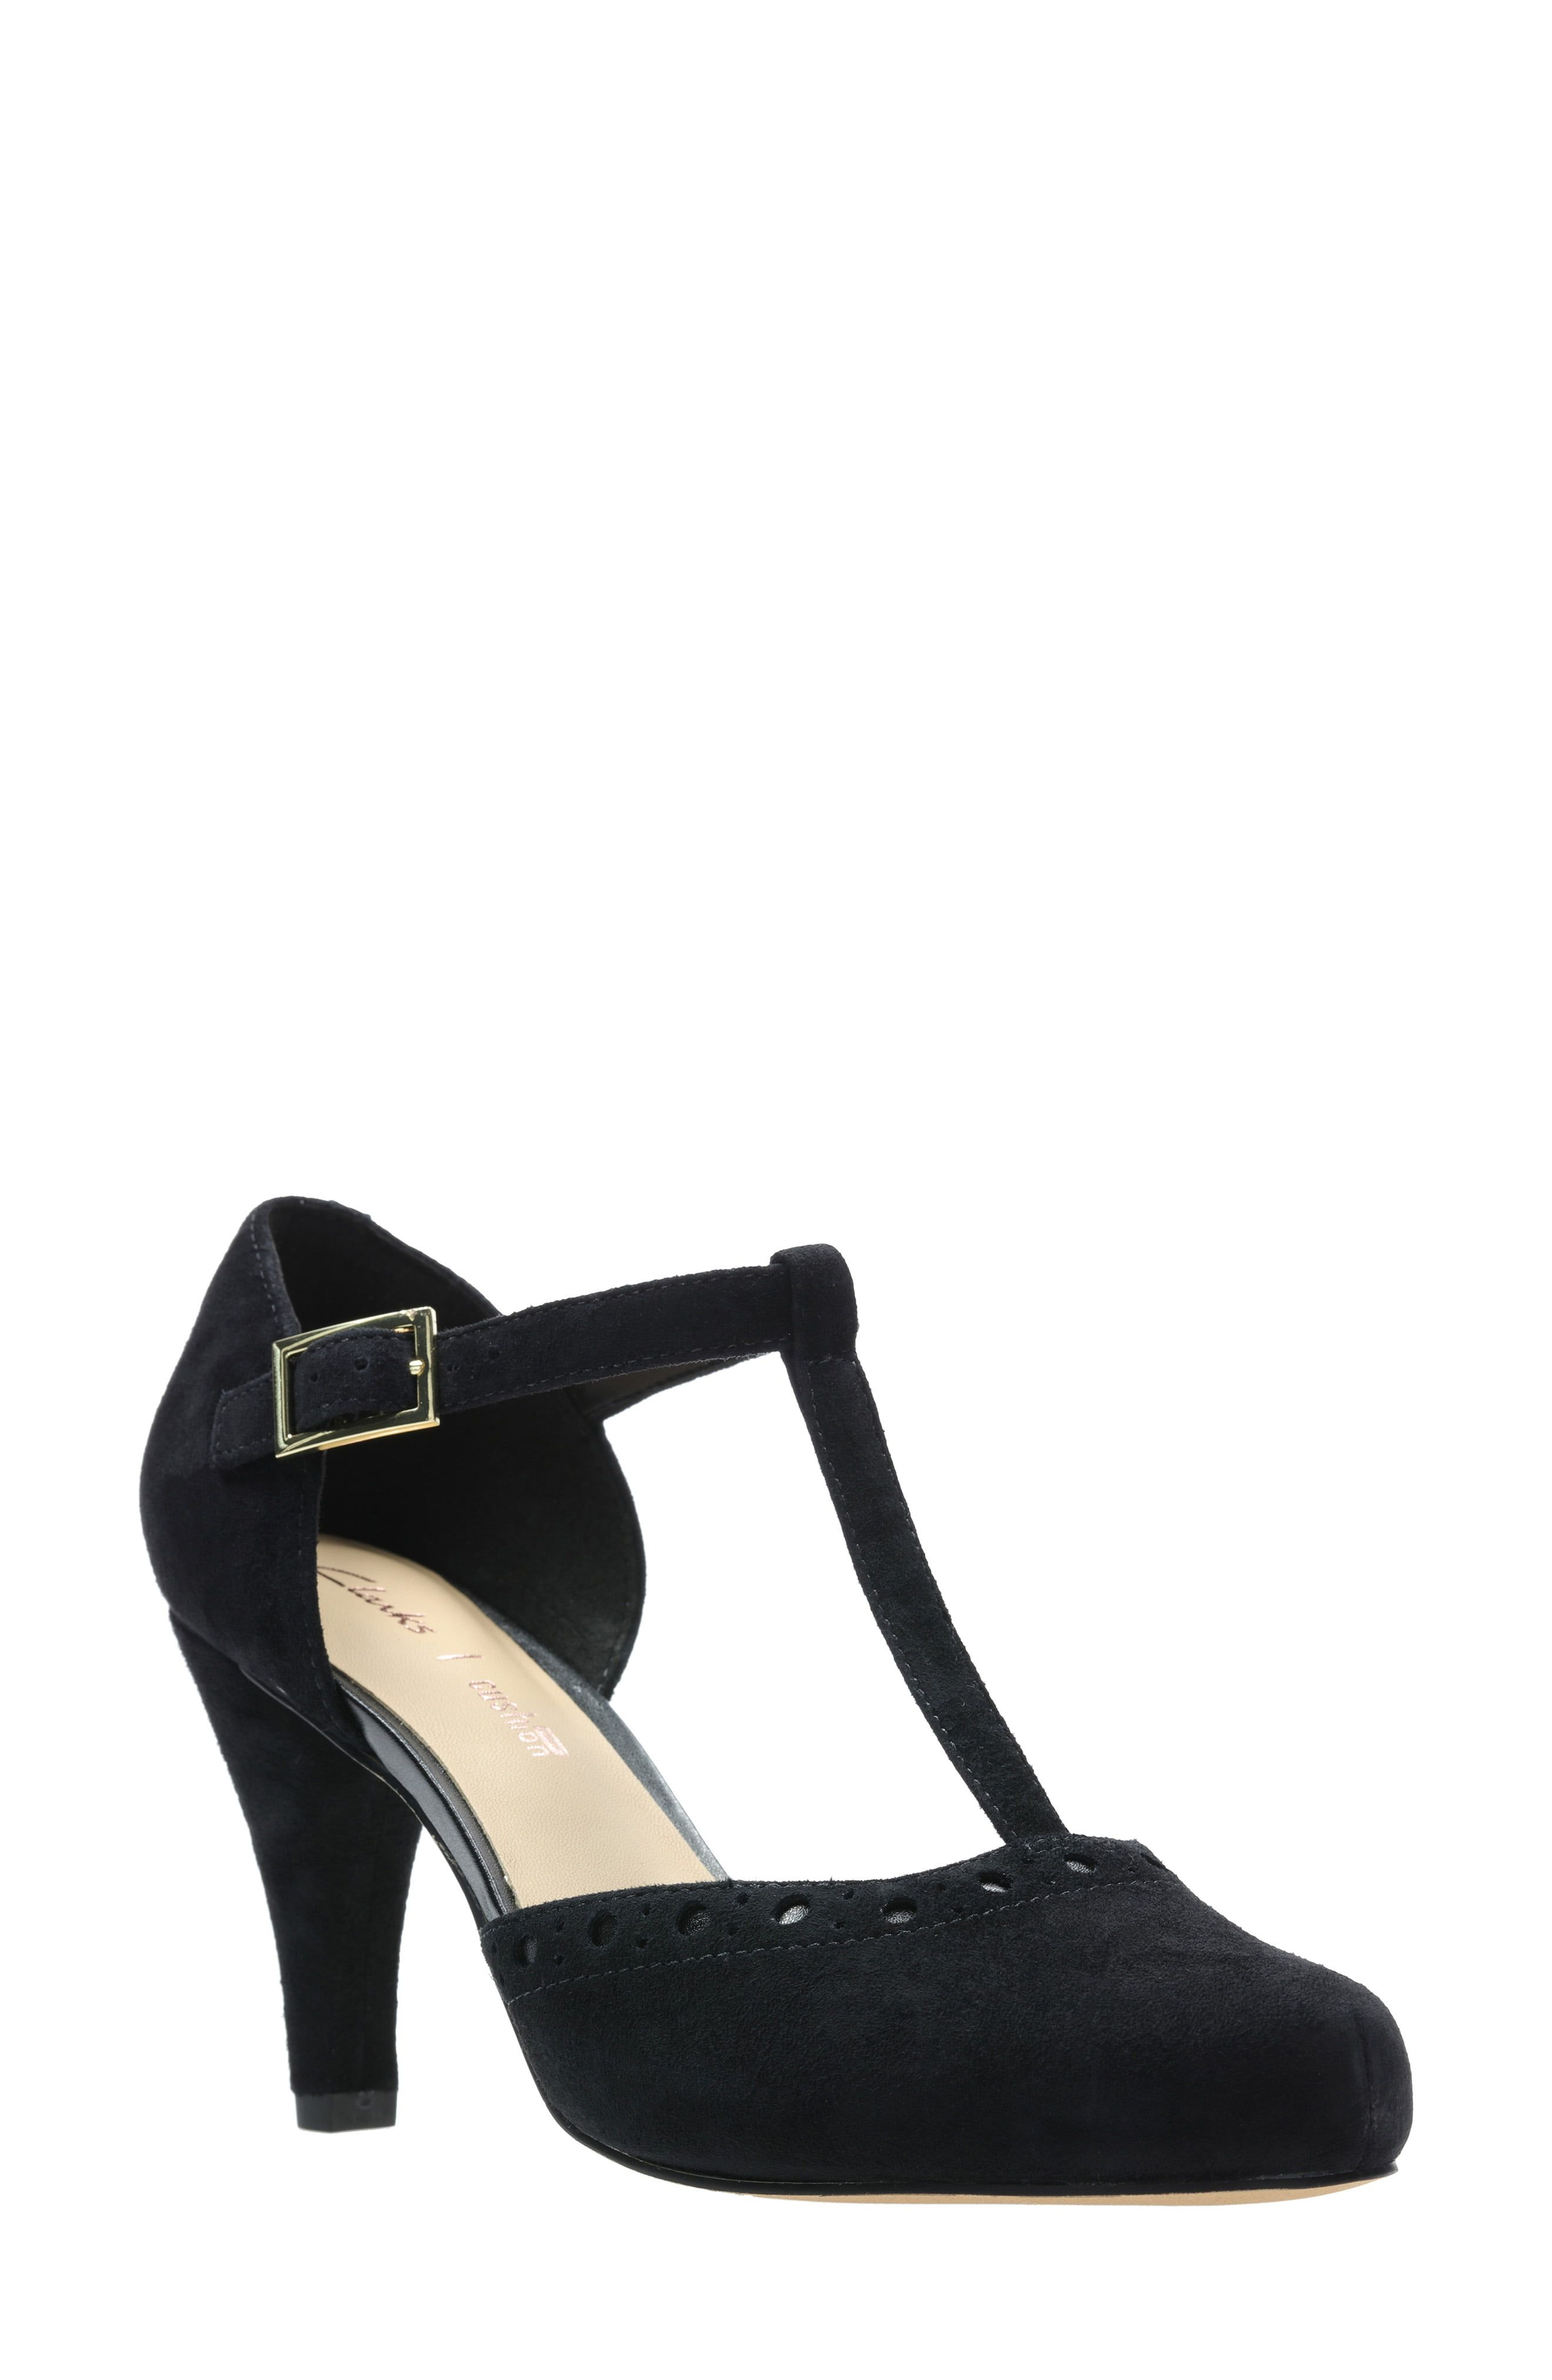 humedad invadir Implacable  Women's Clarks Dalia Leah Pump, Size 6.5 M - Black in 2019 | Products |  Shoes, Vintage style shoes, Heels